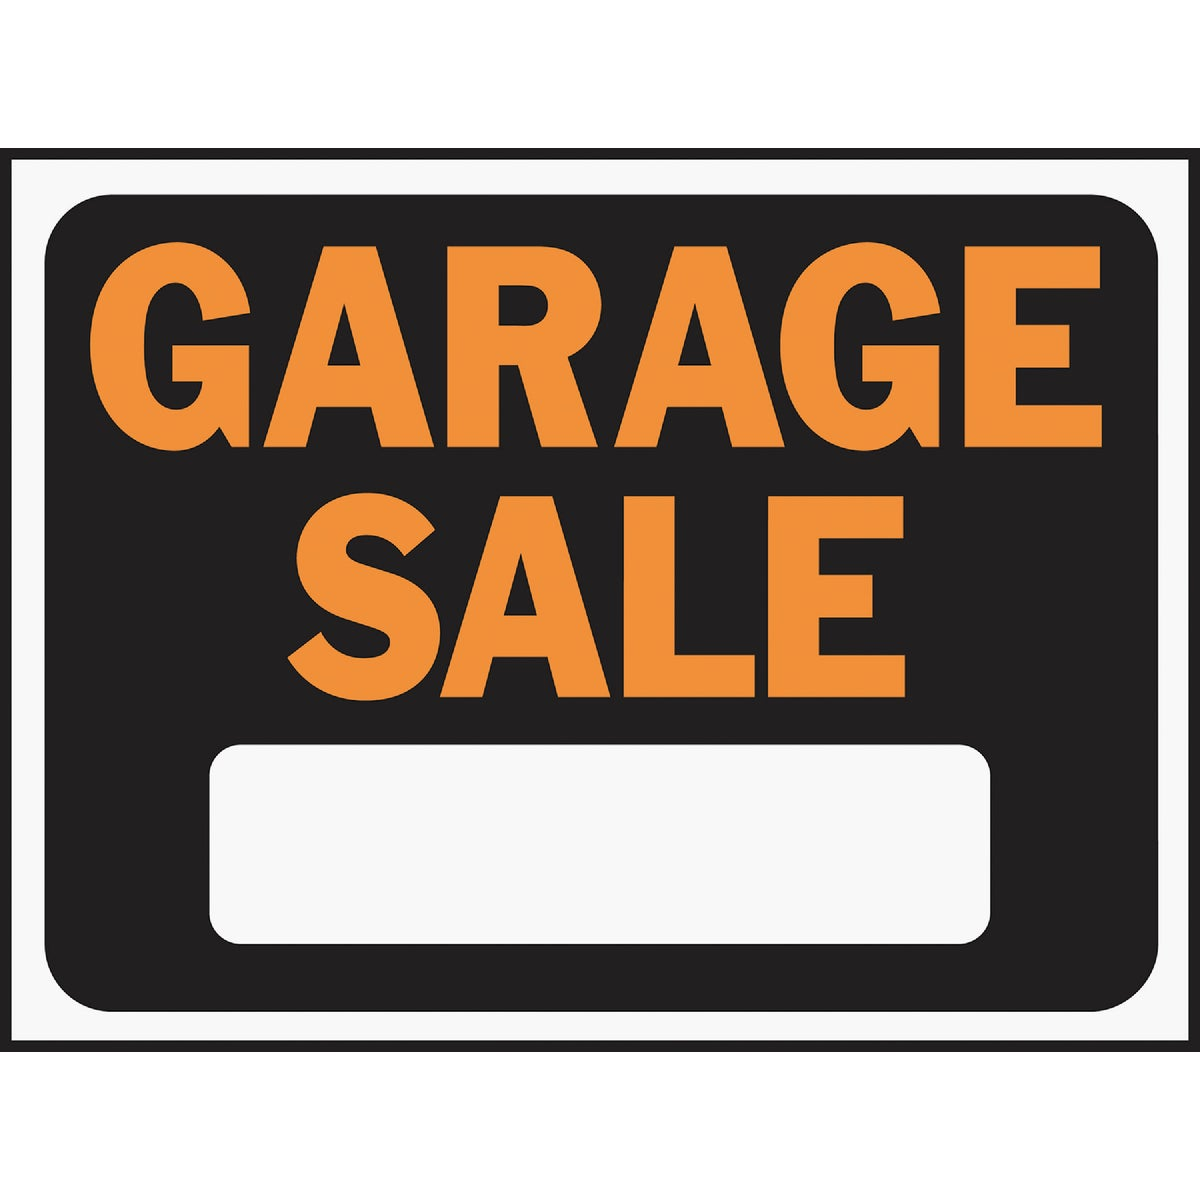 9X12 GARAGE SALE SIGN - 3023 by Hy Ko Prods Co